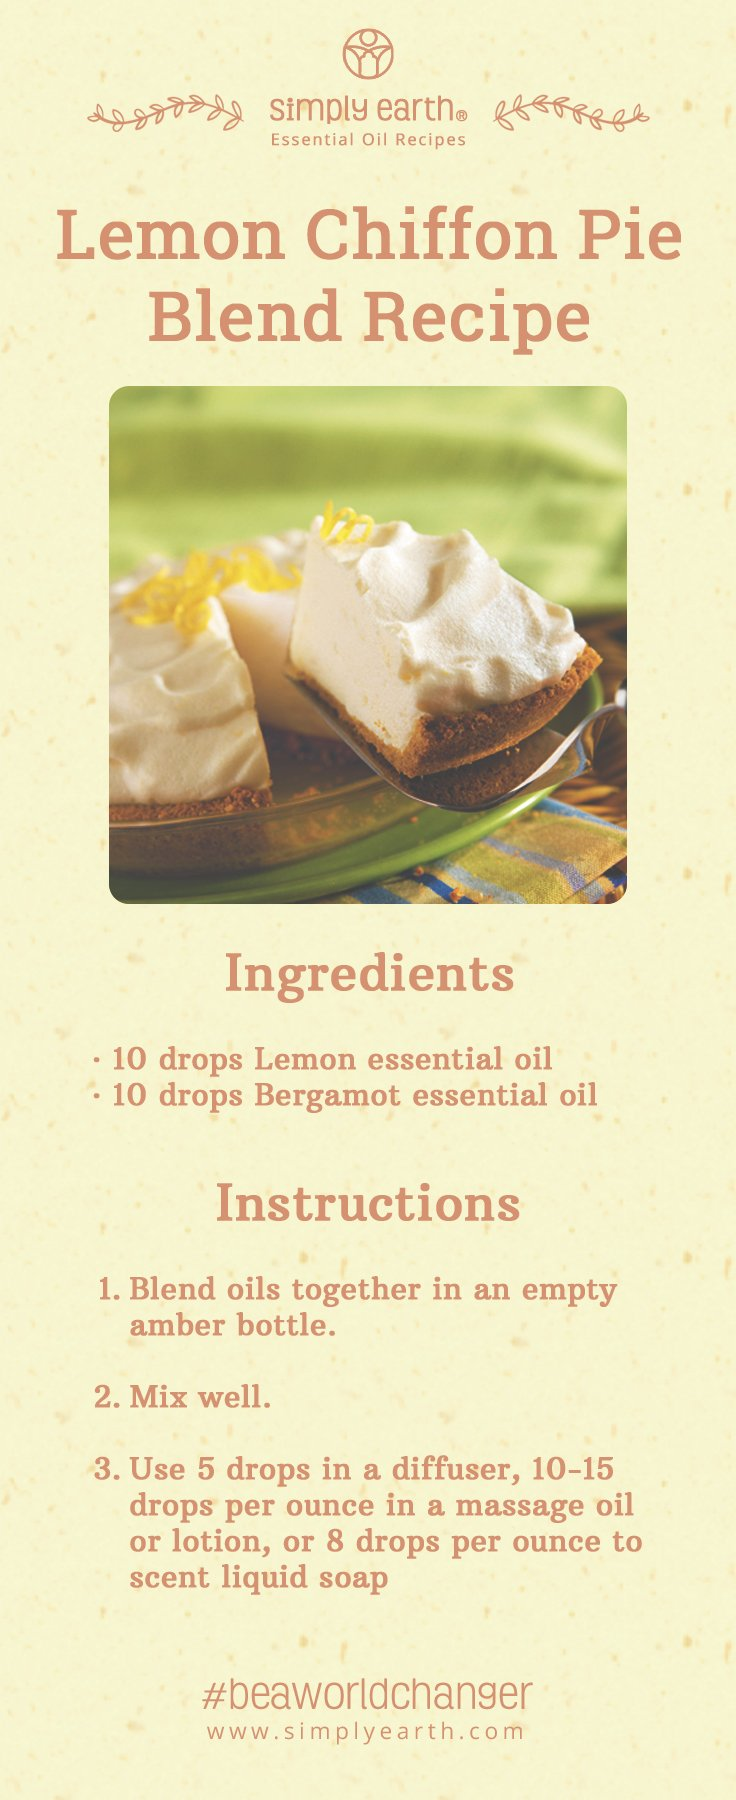 Lemon Chiffon Pie blend recipe with ingrediets and instructions.